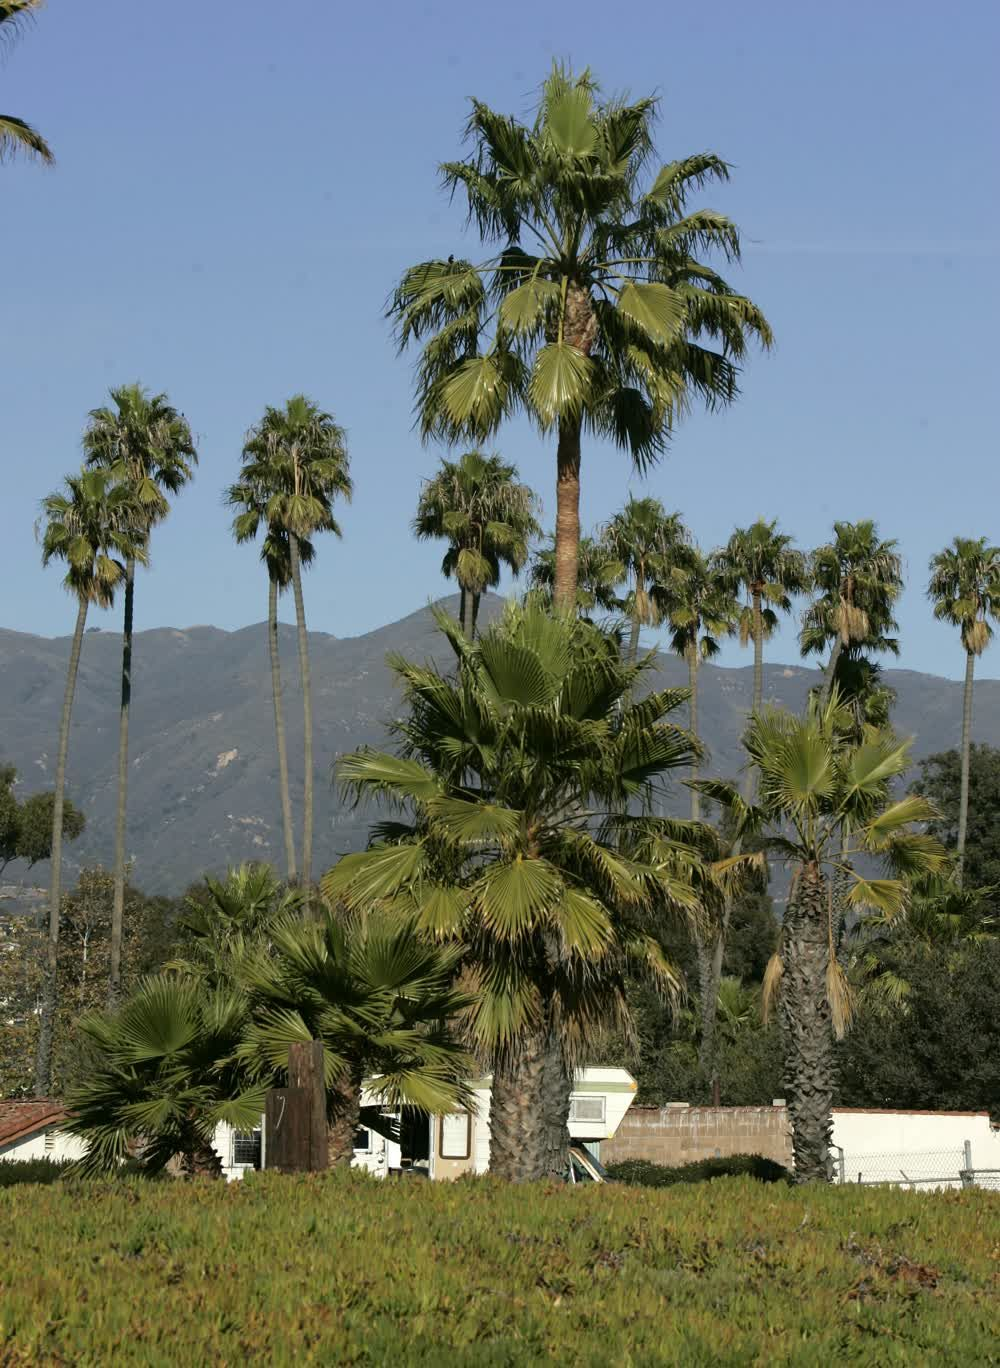 title: Palm trees at Santa Barbara